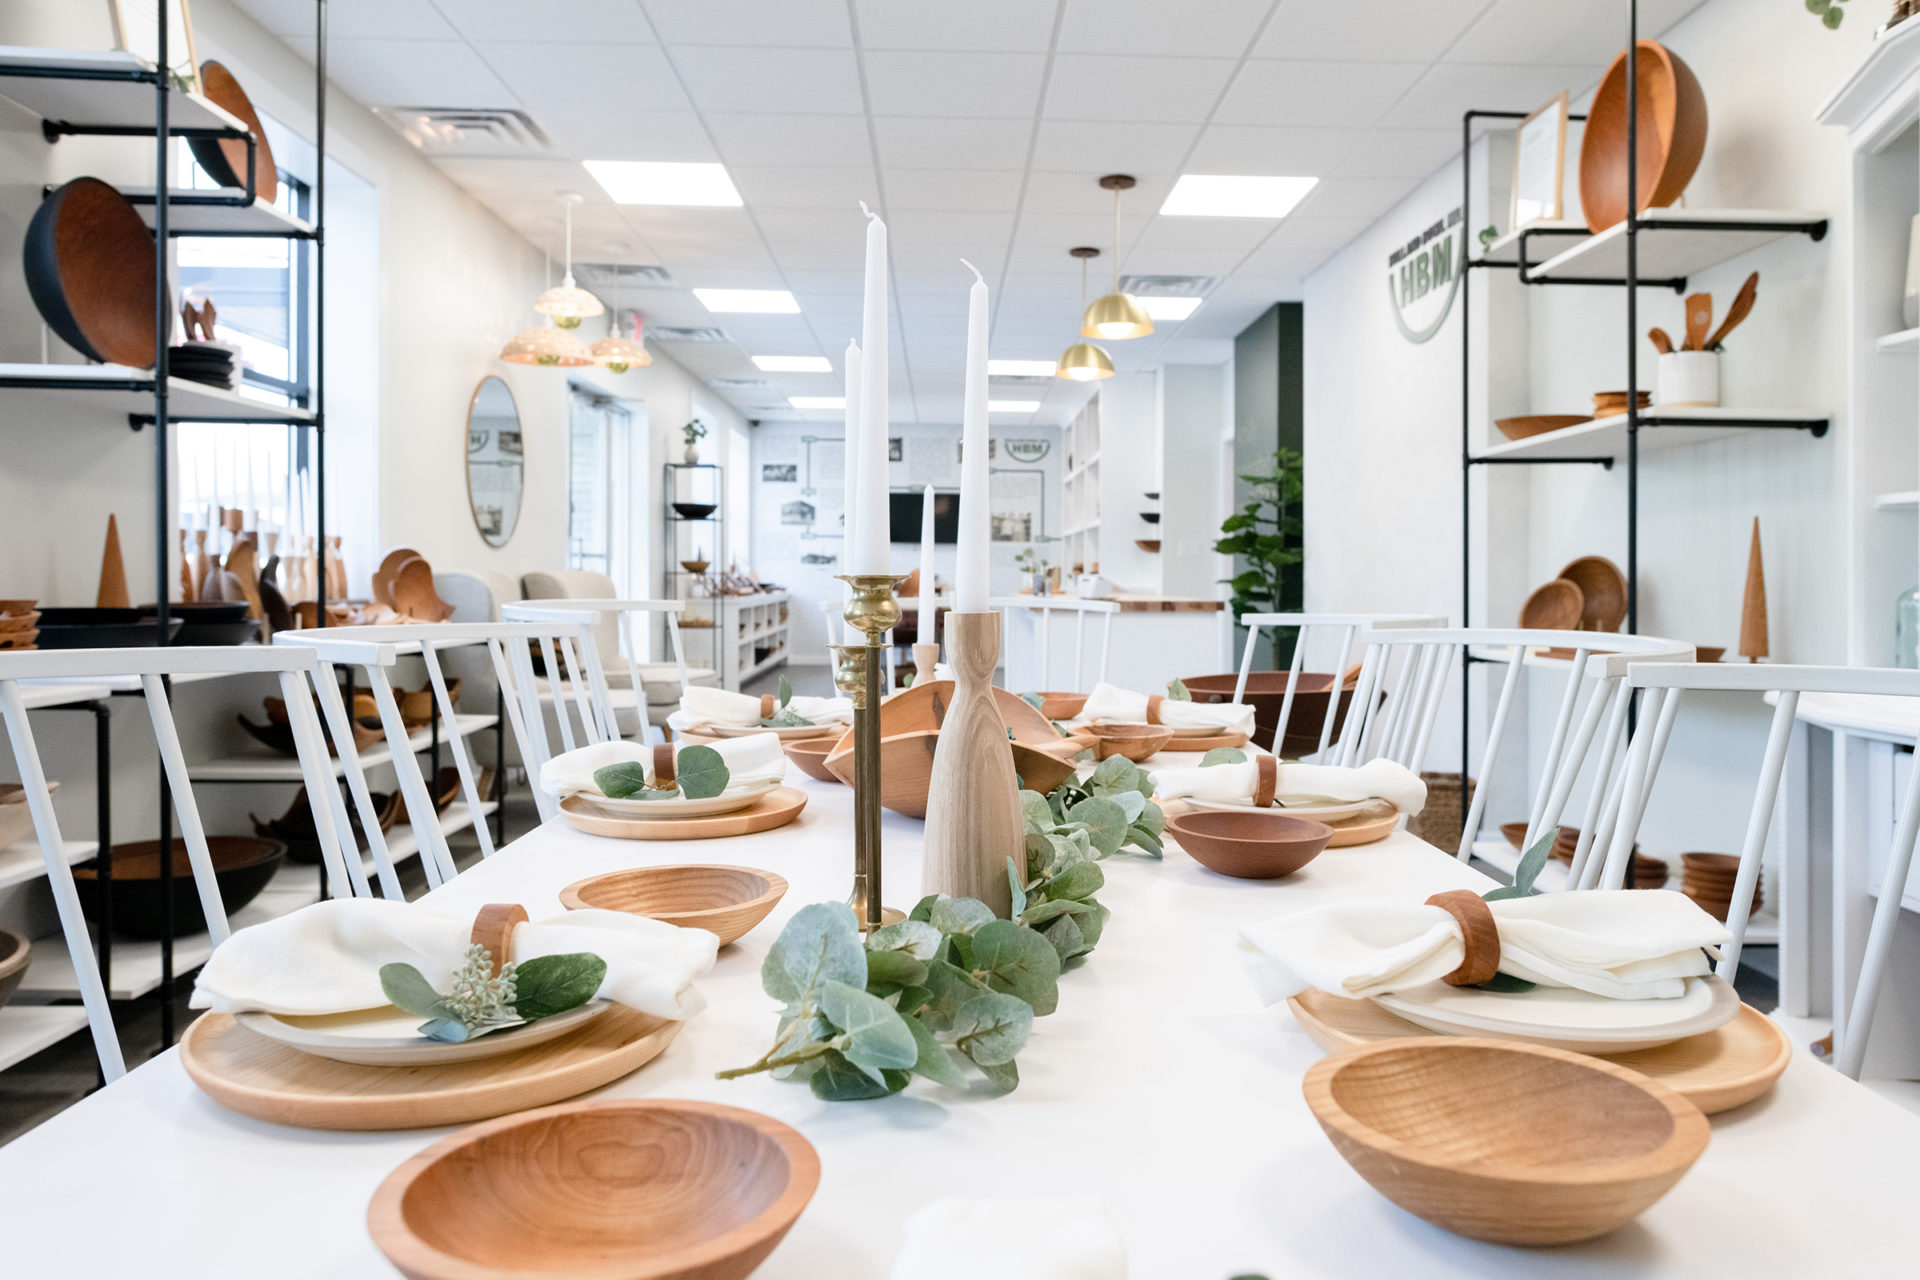 Get to know the many benefits of wooden dishes. A full table spread of wooden wares in the Holland Bowl Showroom